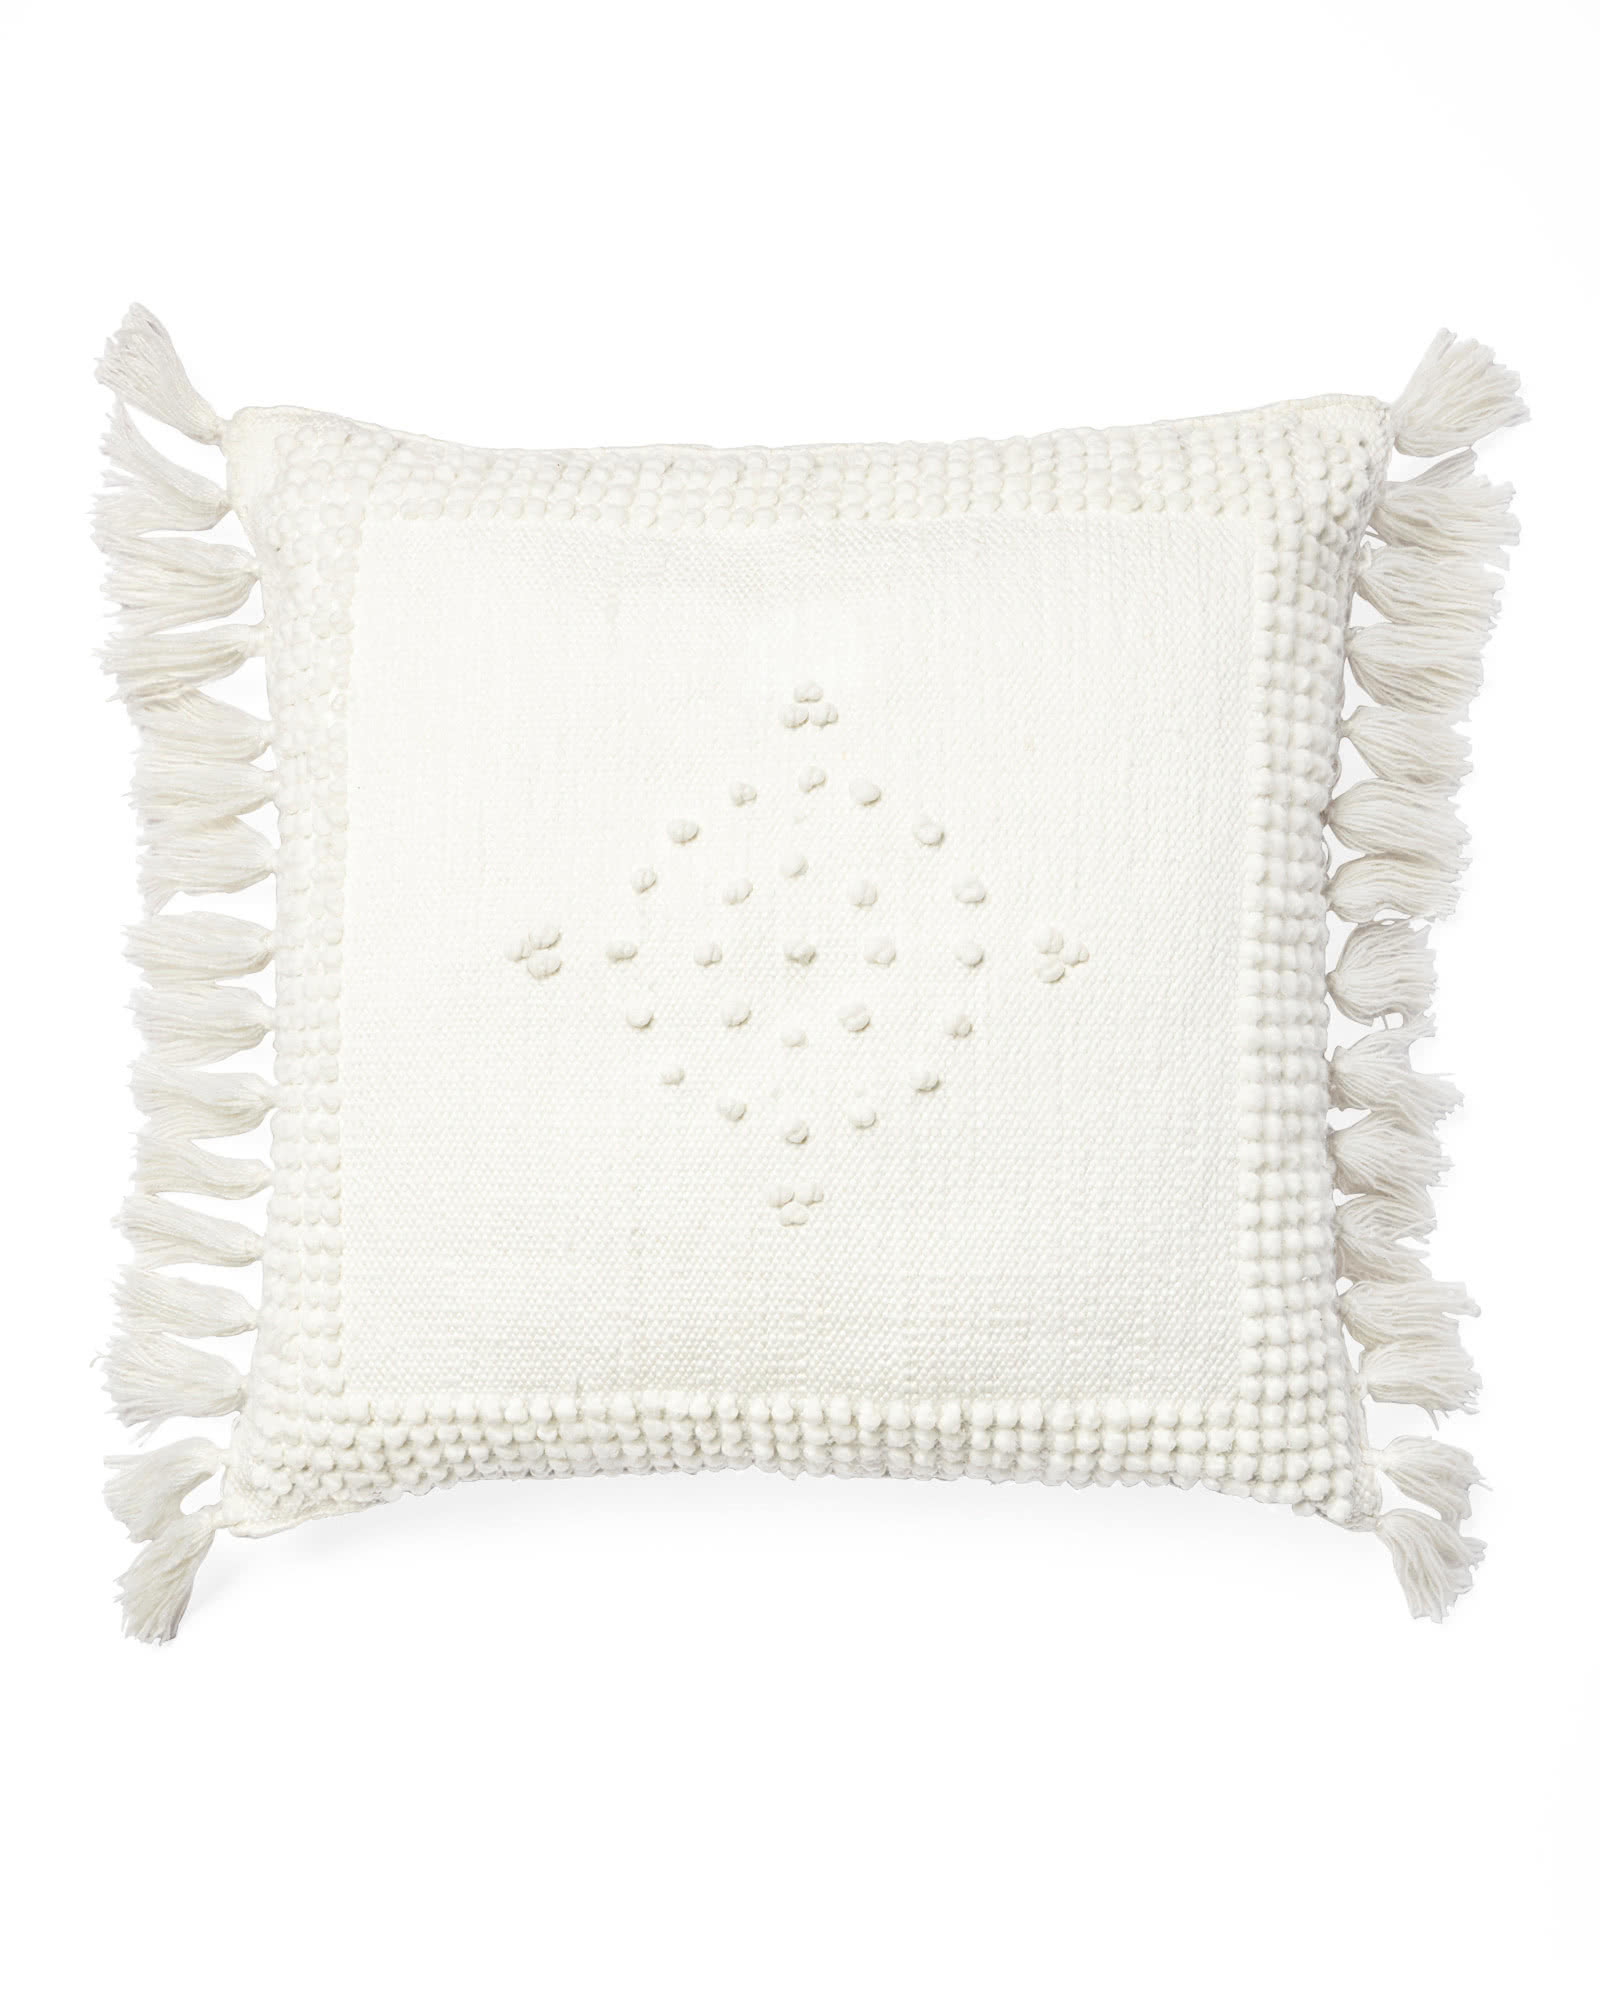 Montecito Pillow Cover, White